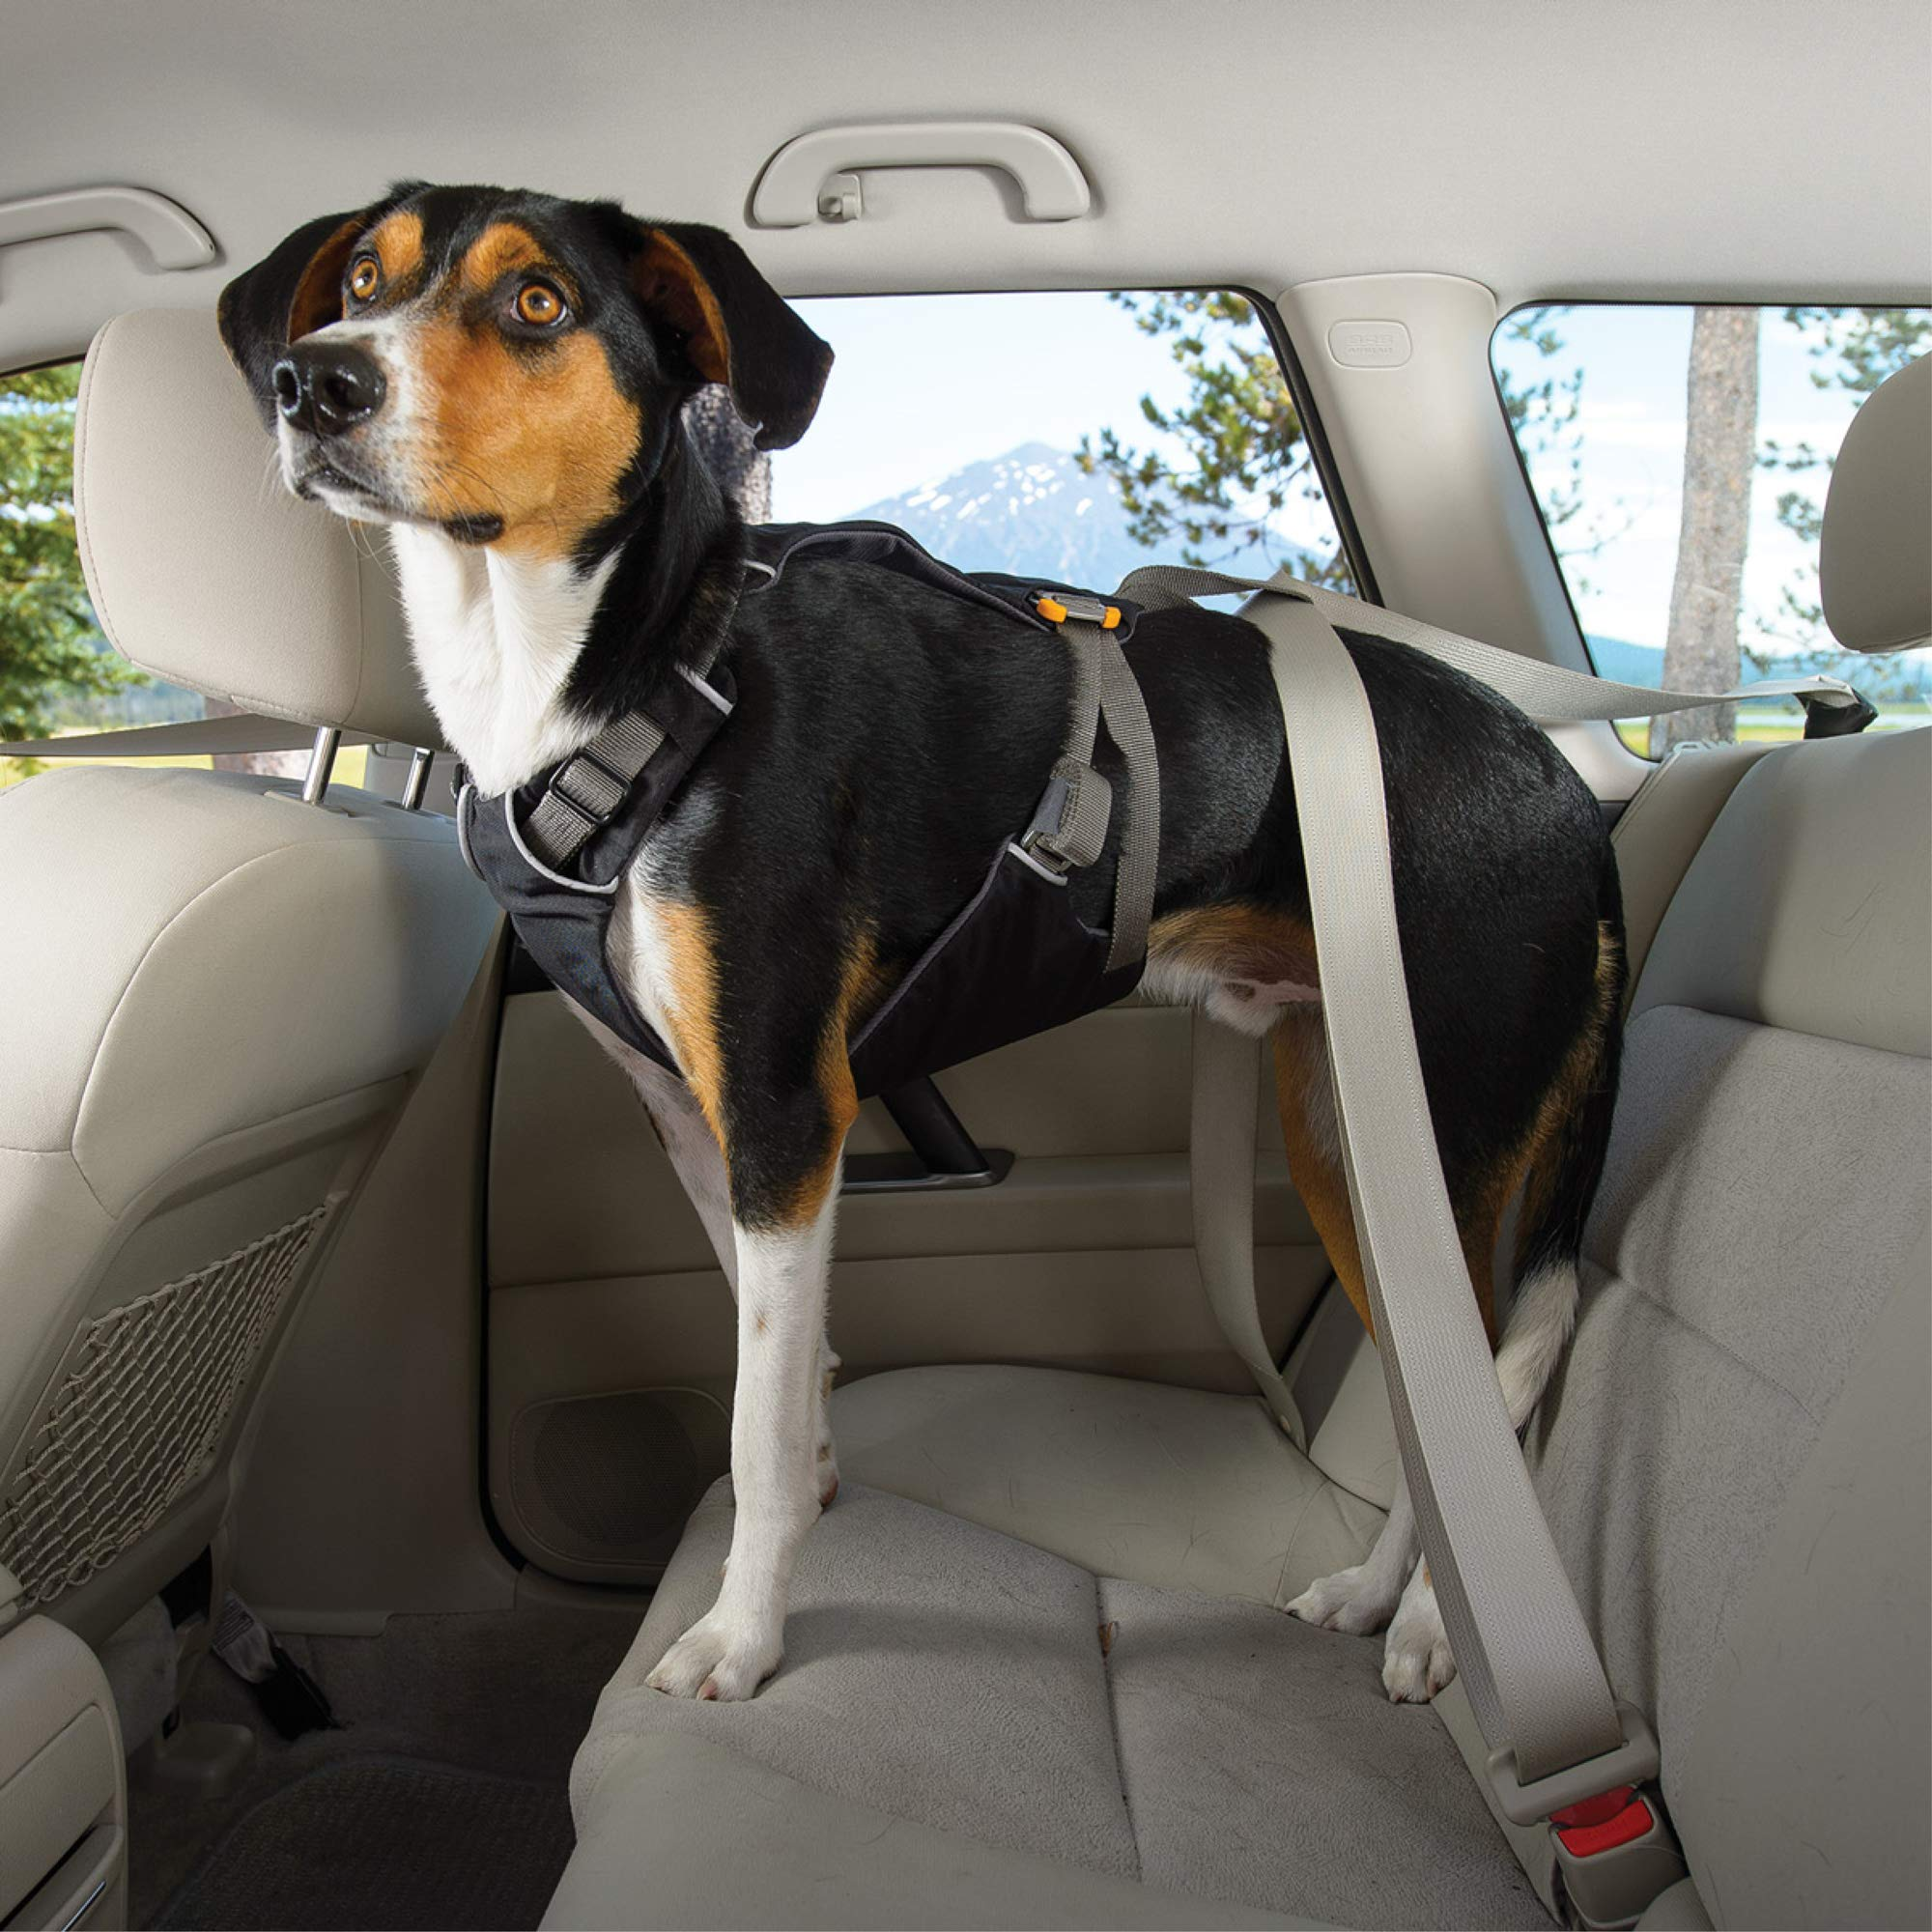 RUFFWEAR - Load Up, Dog Car Harness with Strength-Rated Hardware, Secure Vehicle Restraint, Universal Seat Belt Attachment, Obsidian Black, Medium by RUFFWEAR (Image #8)